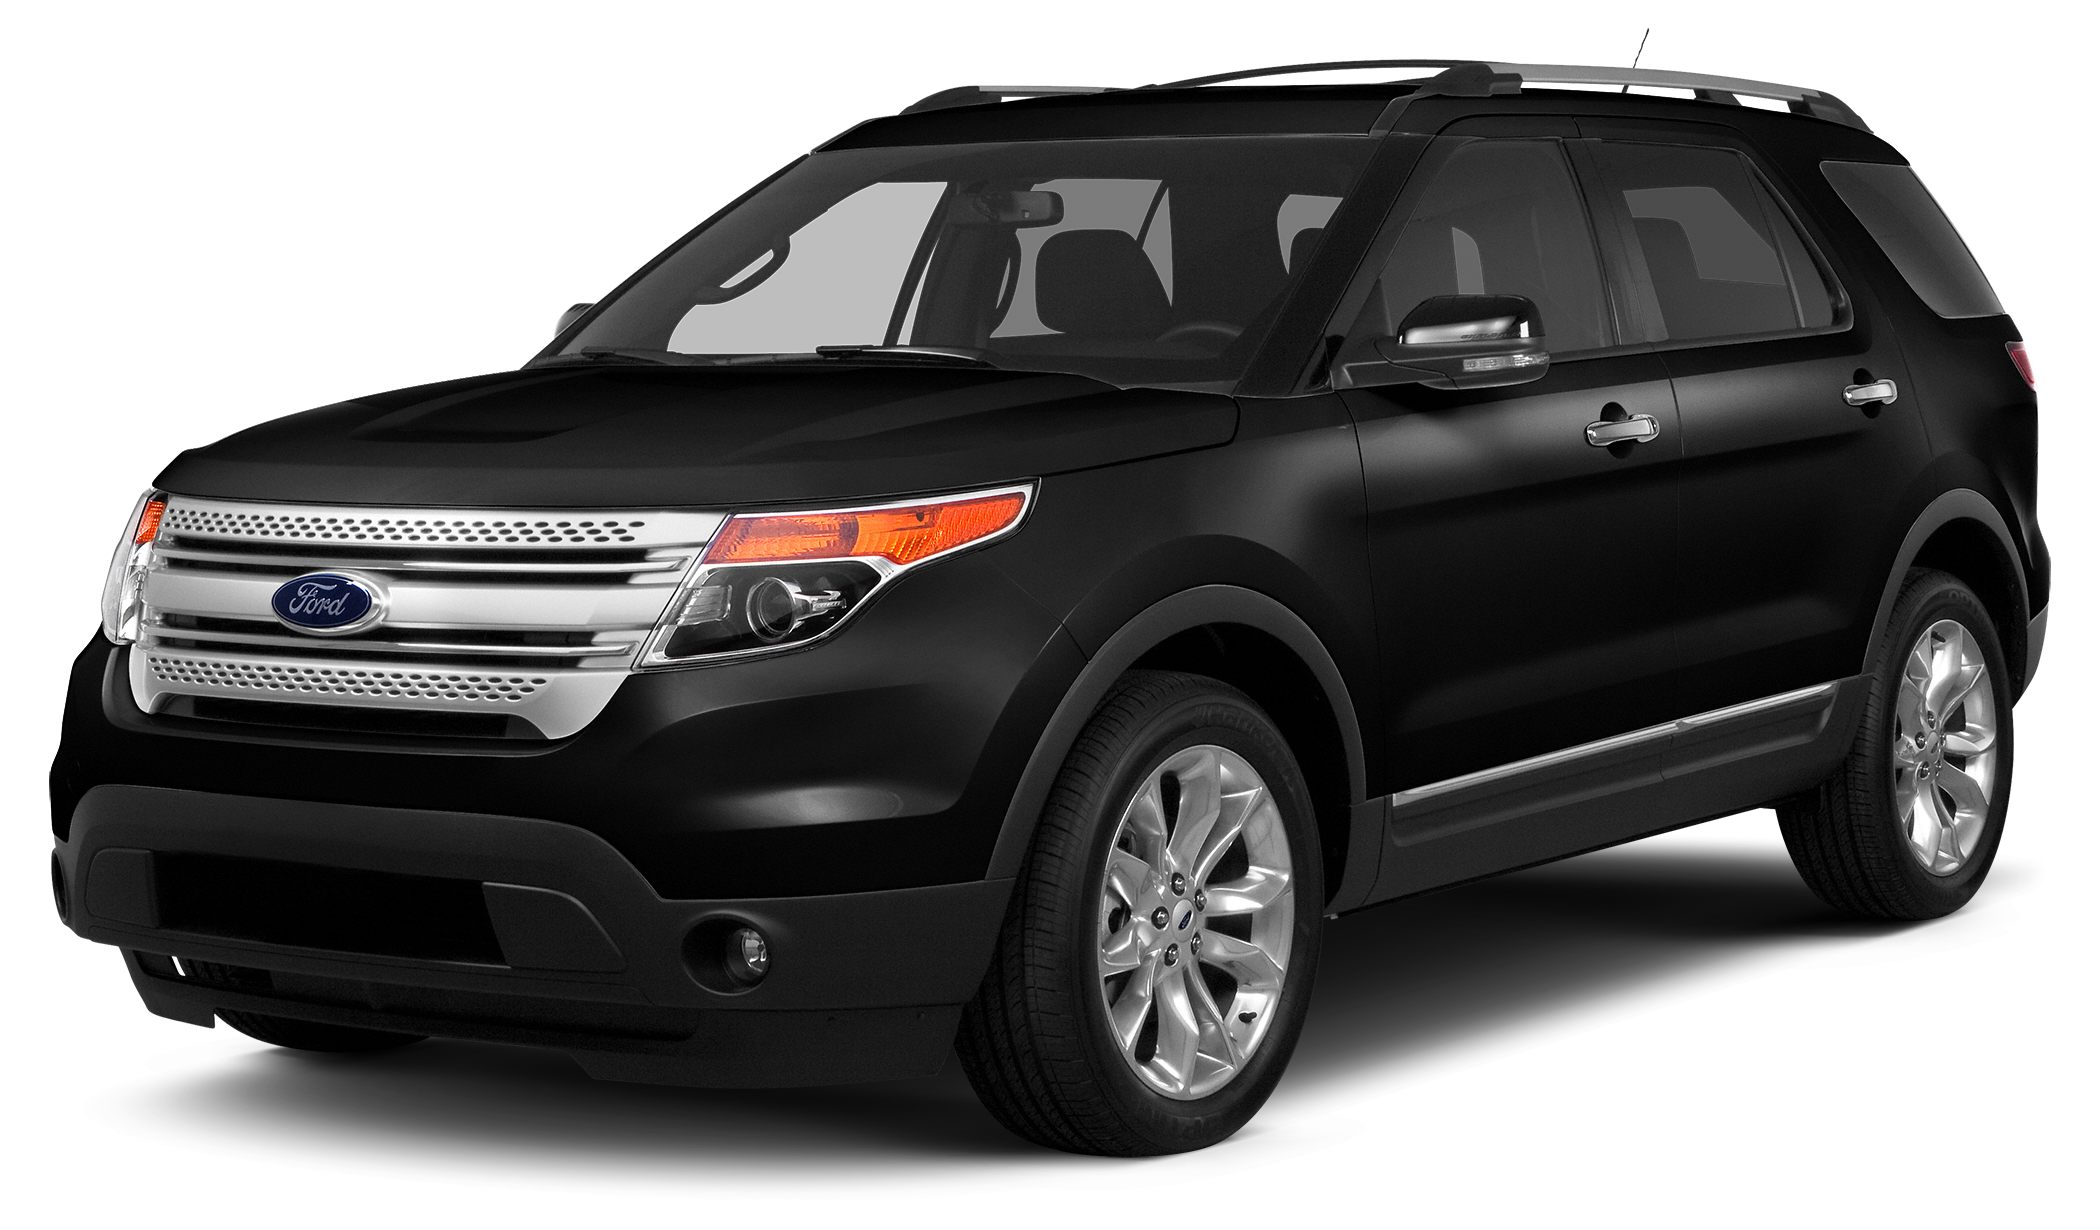 2015 Ford Explorer XLT Cannons exclusive 2 years or 24000 miles complimentary maintenance program